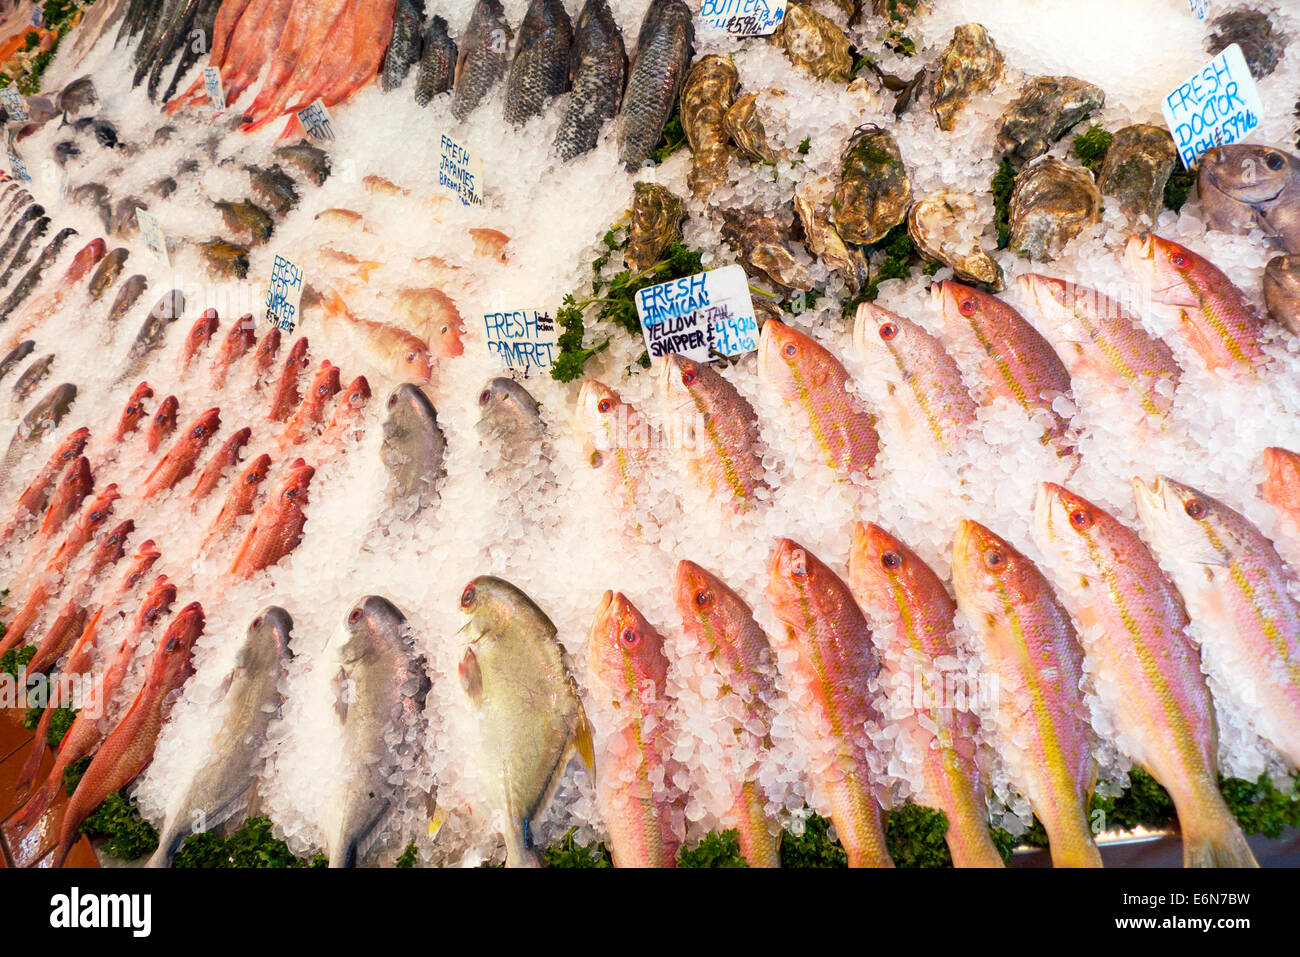 Variety of fresh fish on ice from around the world for for Jamaica fish market